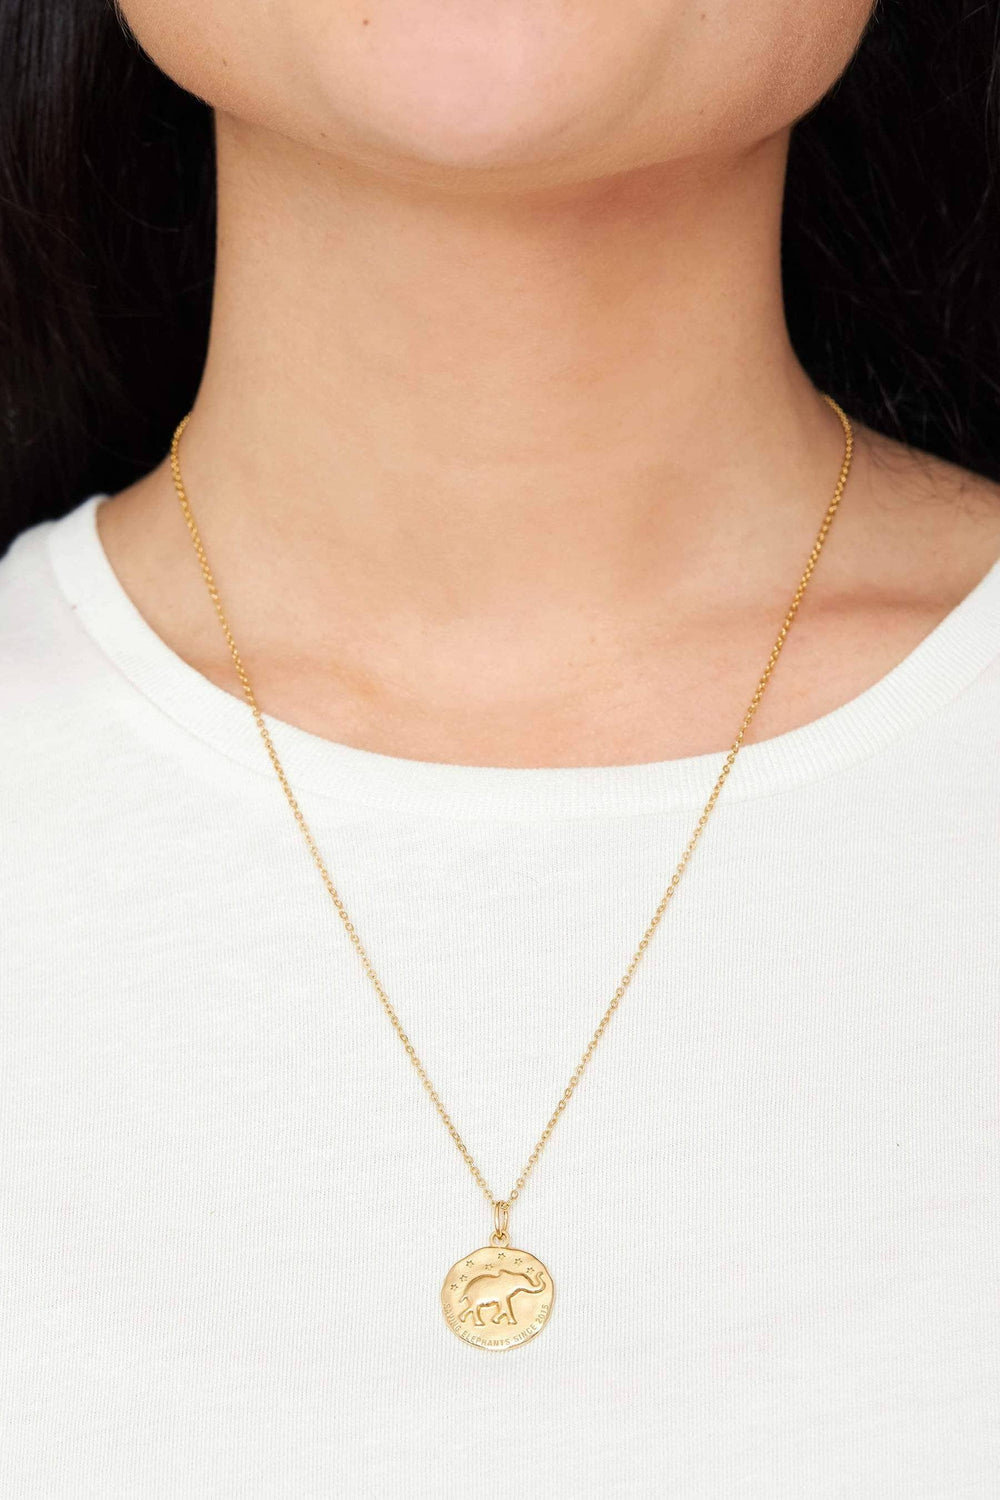 Ivory Ella Jewelry Gold Casted Coin Necklace